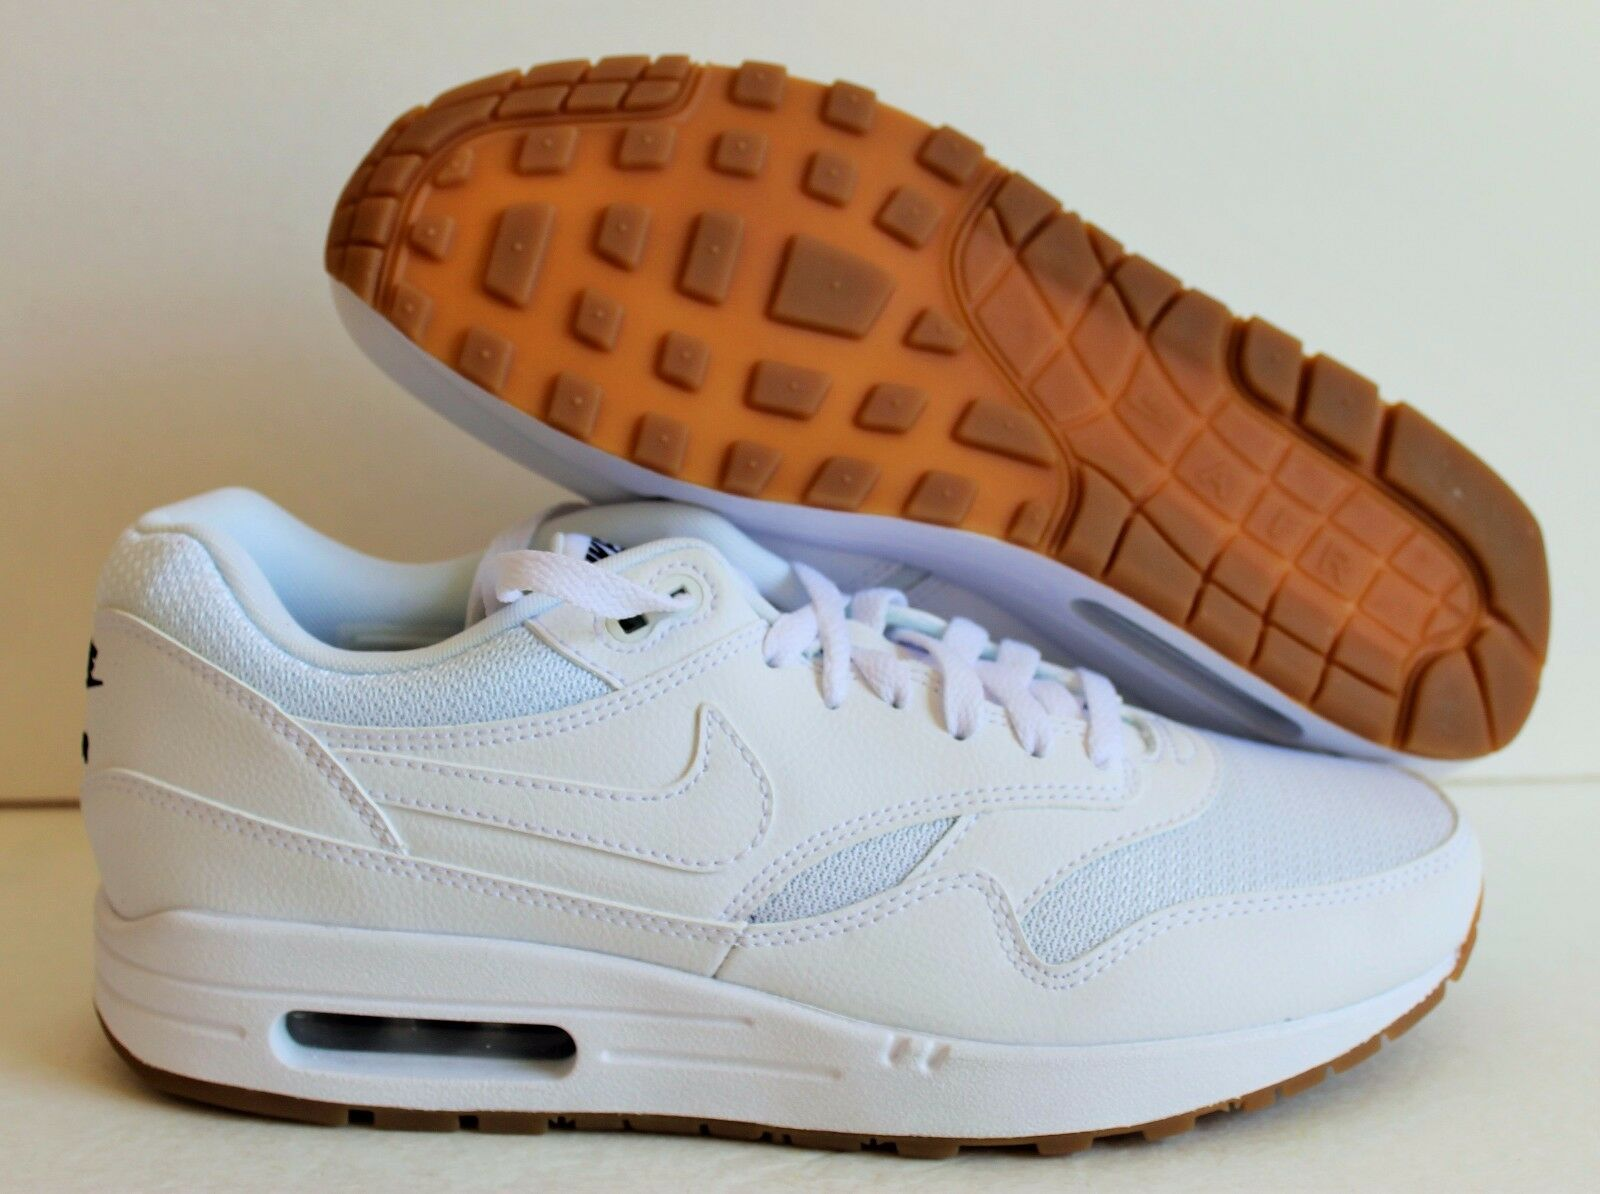 NIKE MEN AIR MAX 1 iD WHITE SZ 9.5 [744459 991] free